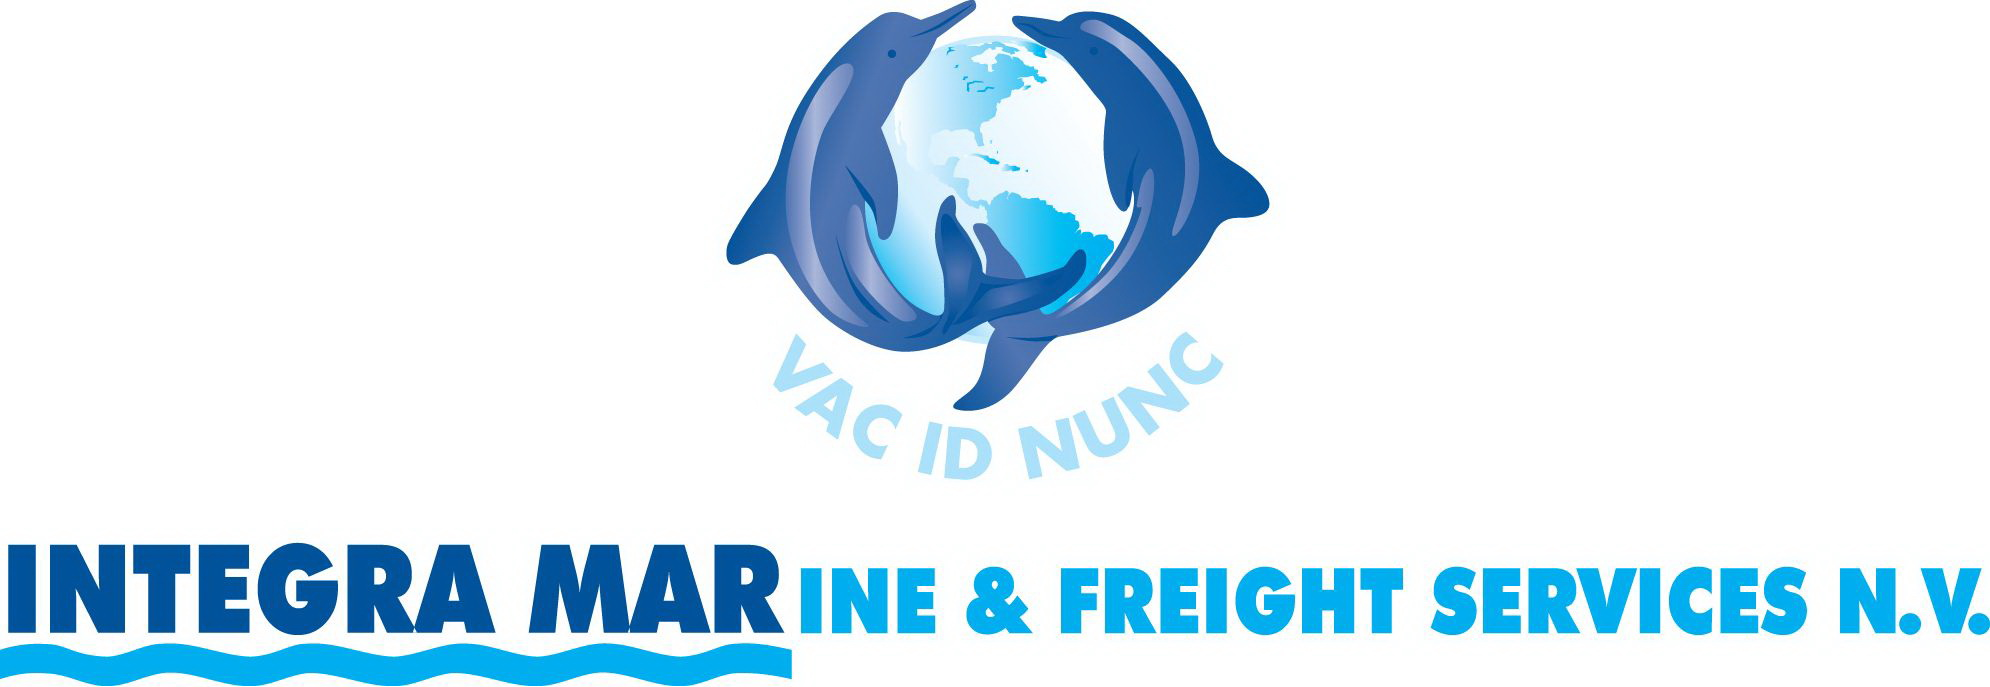 Integra Marine and Freight Services Logo